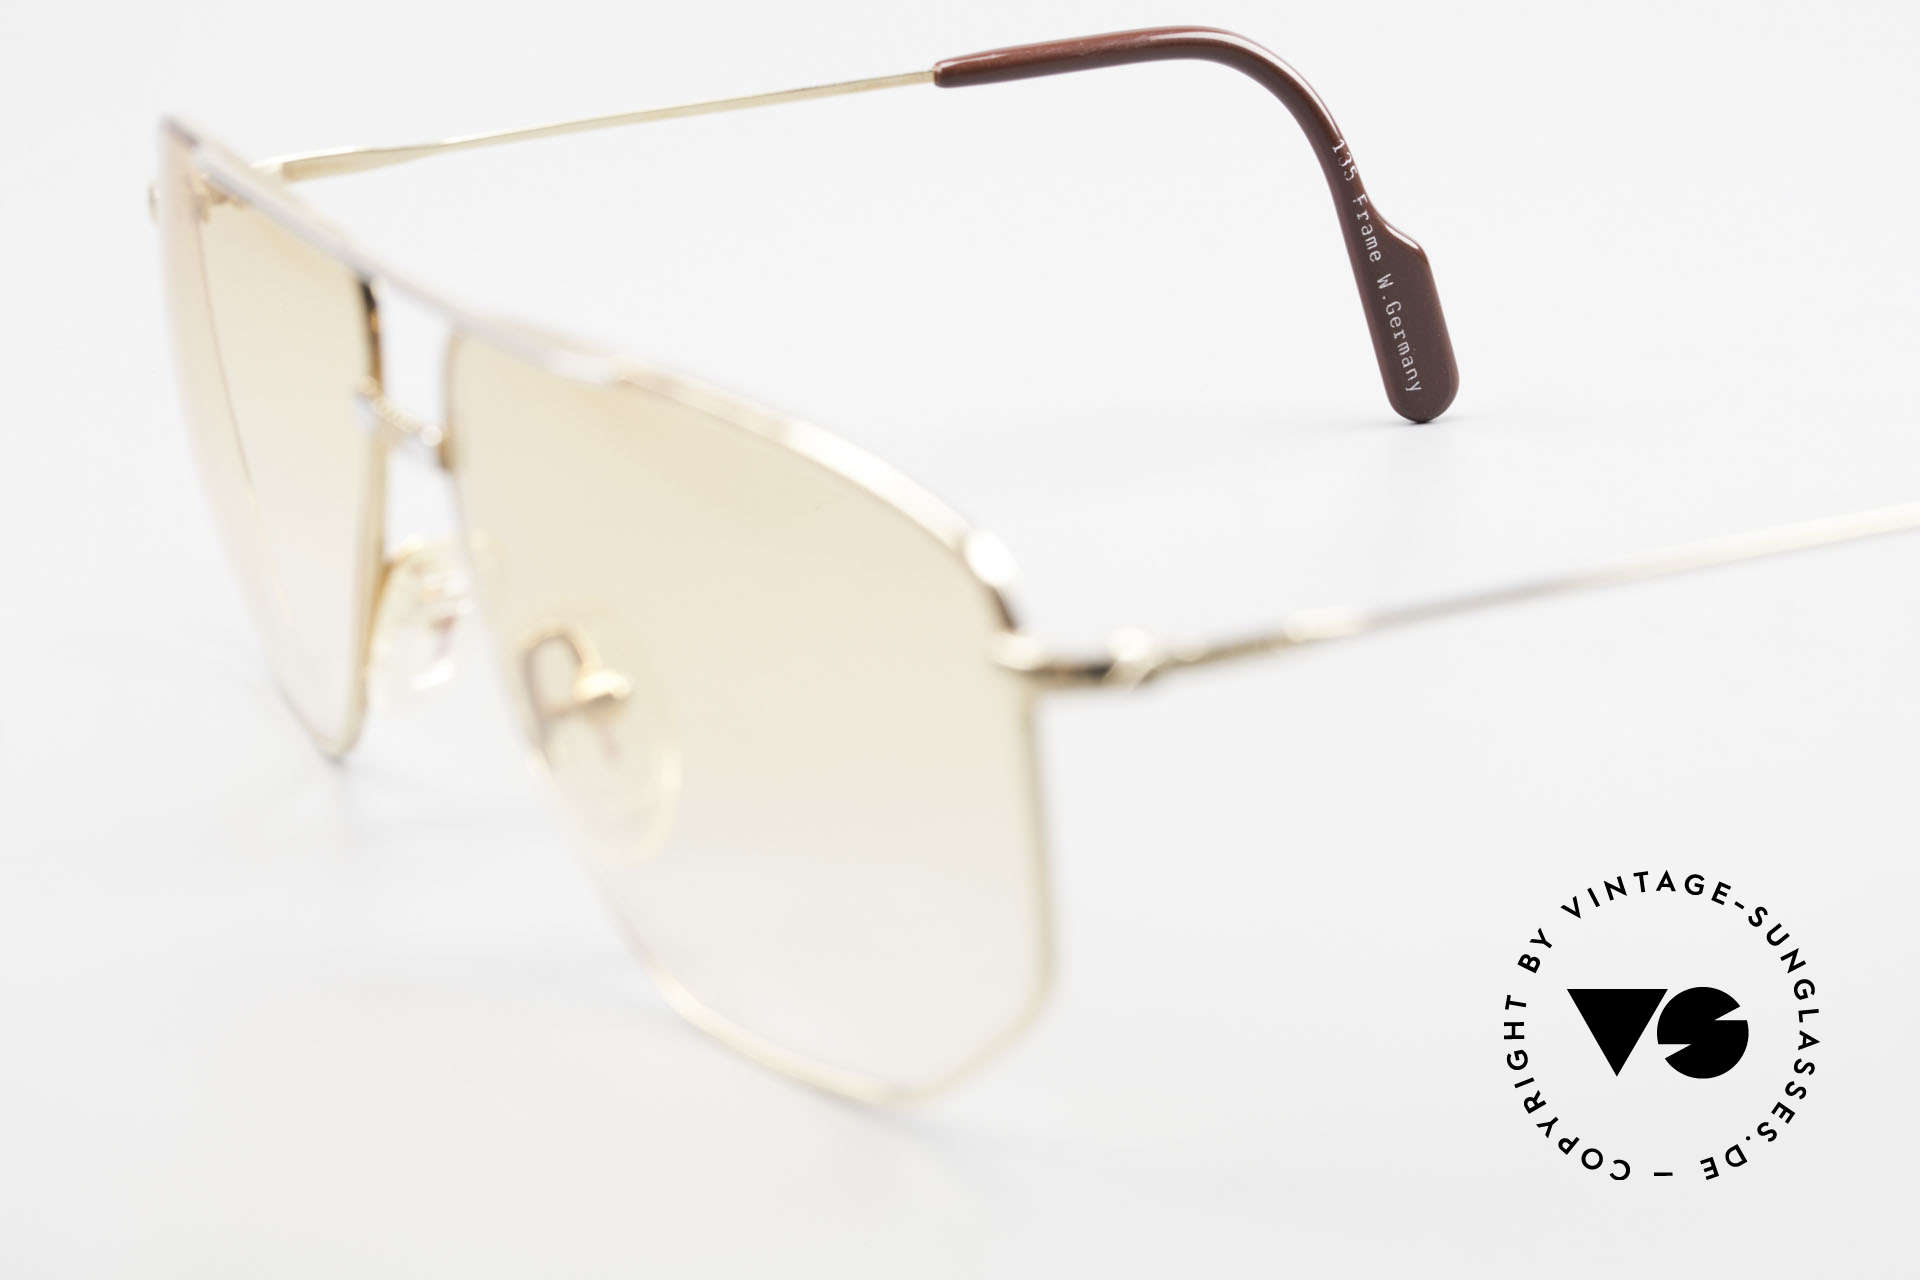 Alpina FM68 No Retro Glasses True Vintage, with orange-gradient sun lenses (could be worn at night), Made for Men